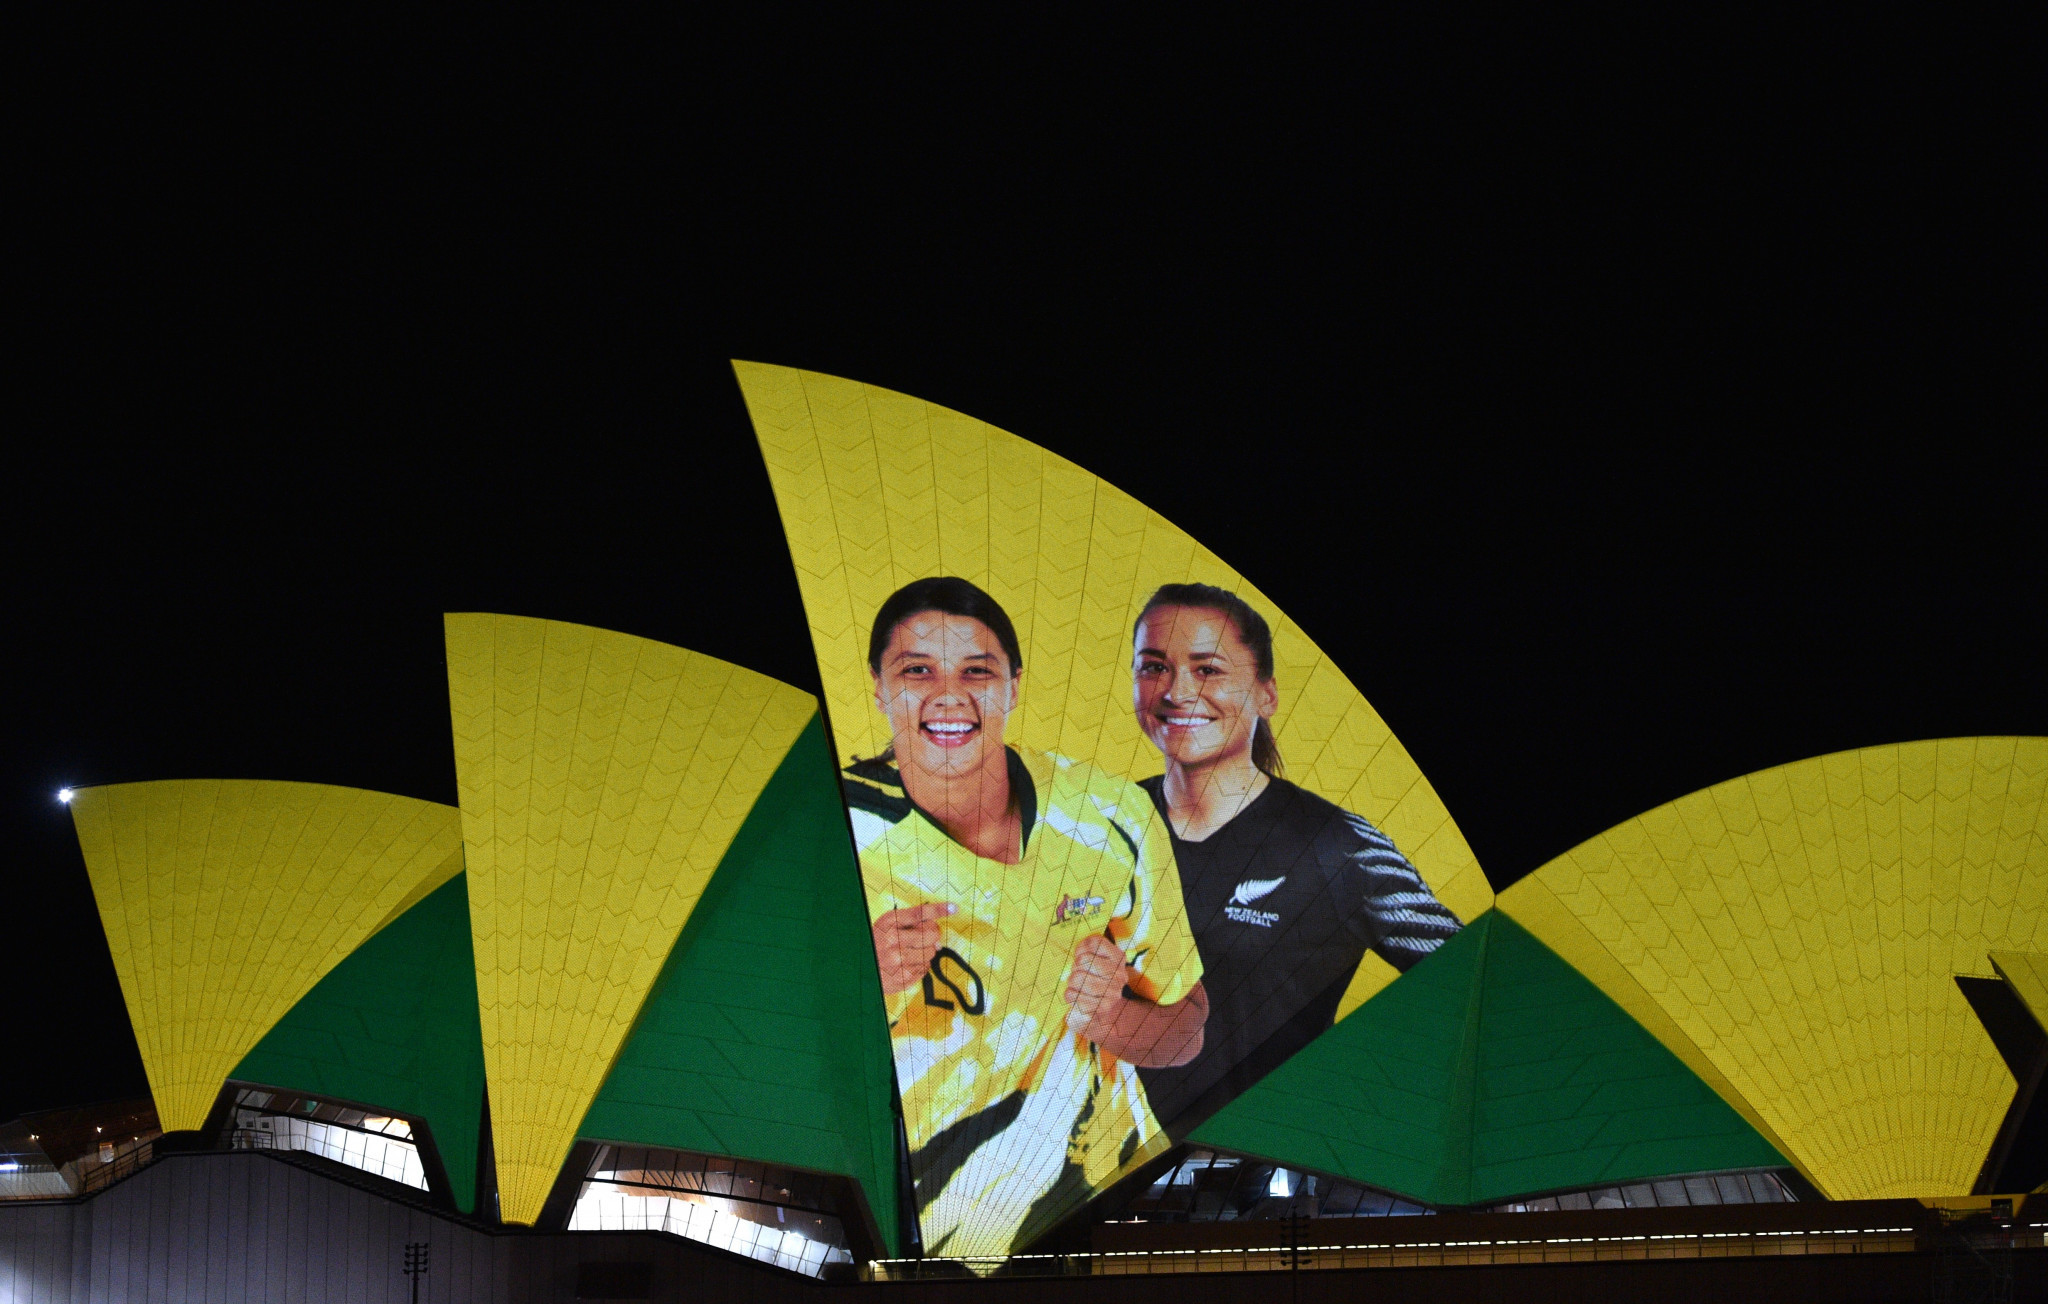 FIFA Congress expected to determine future hosts of Women's World Cup